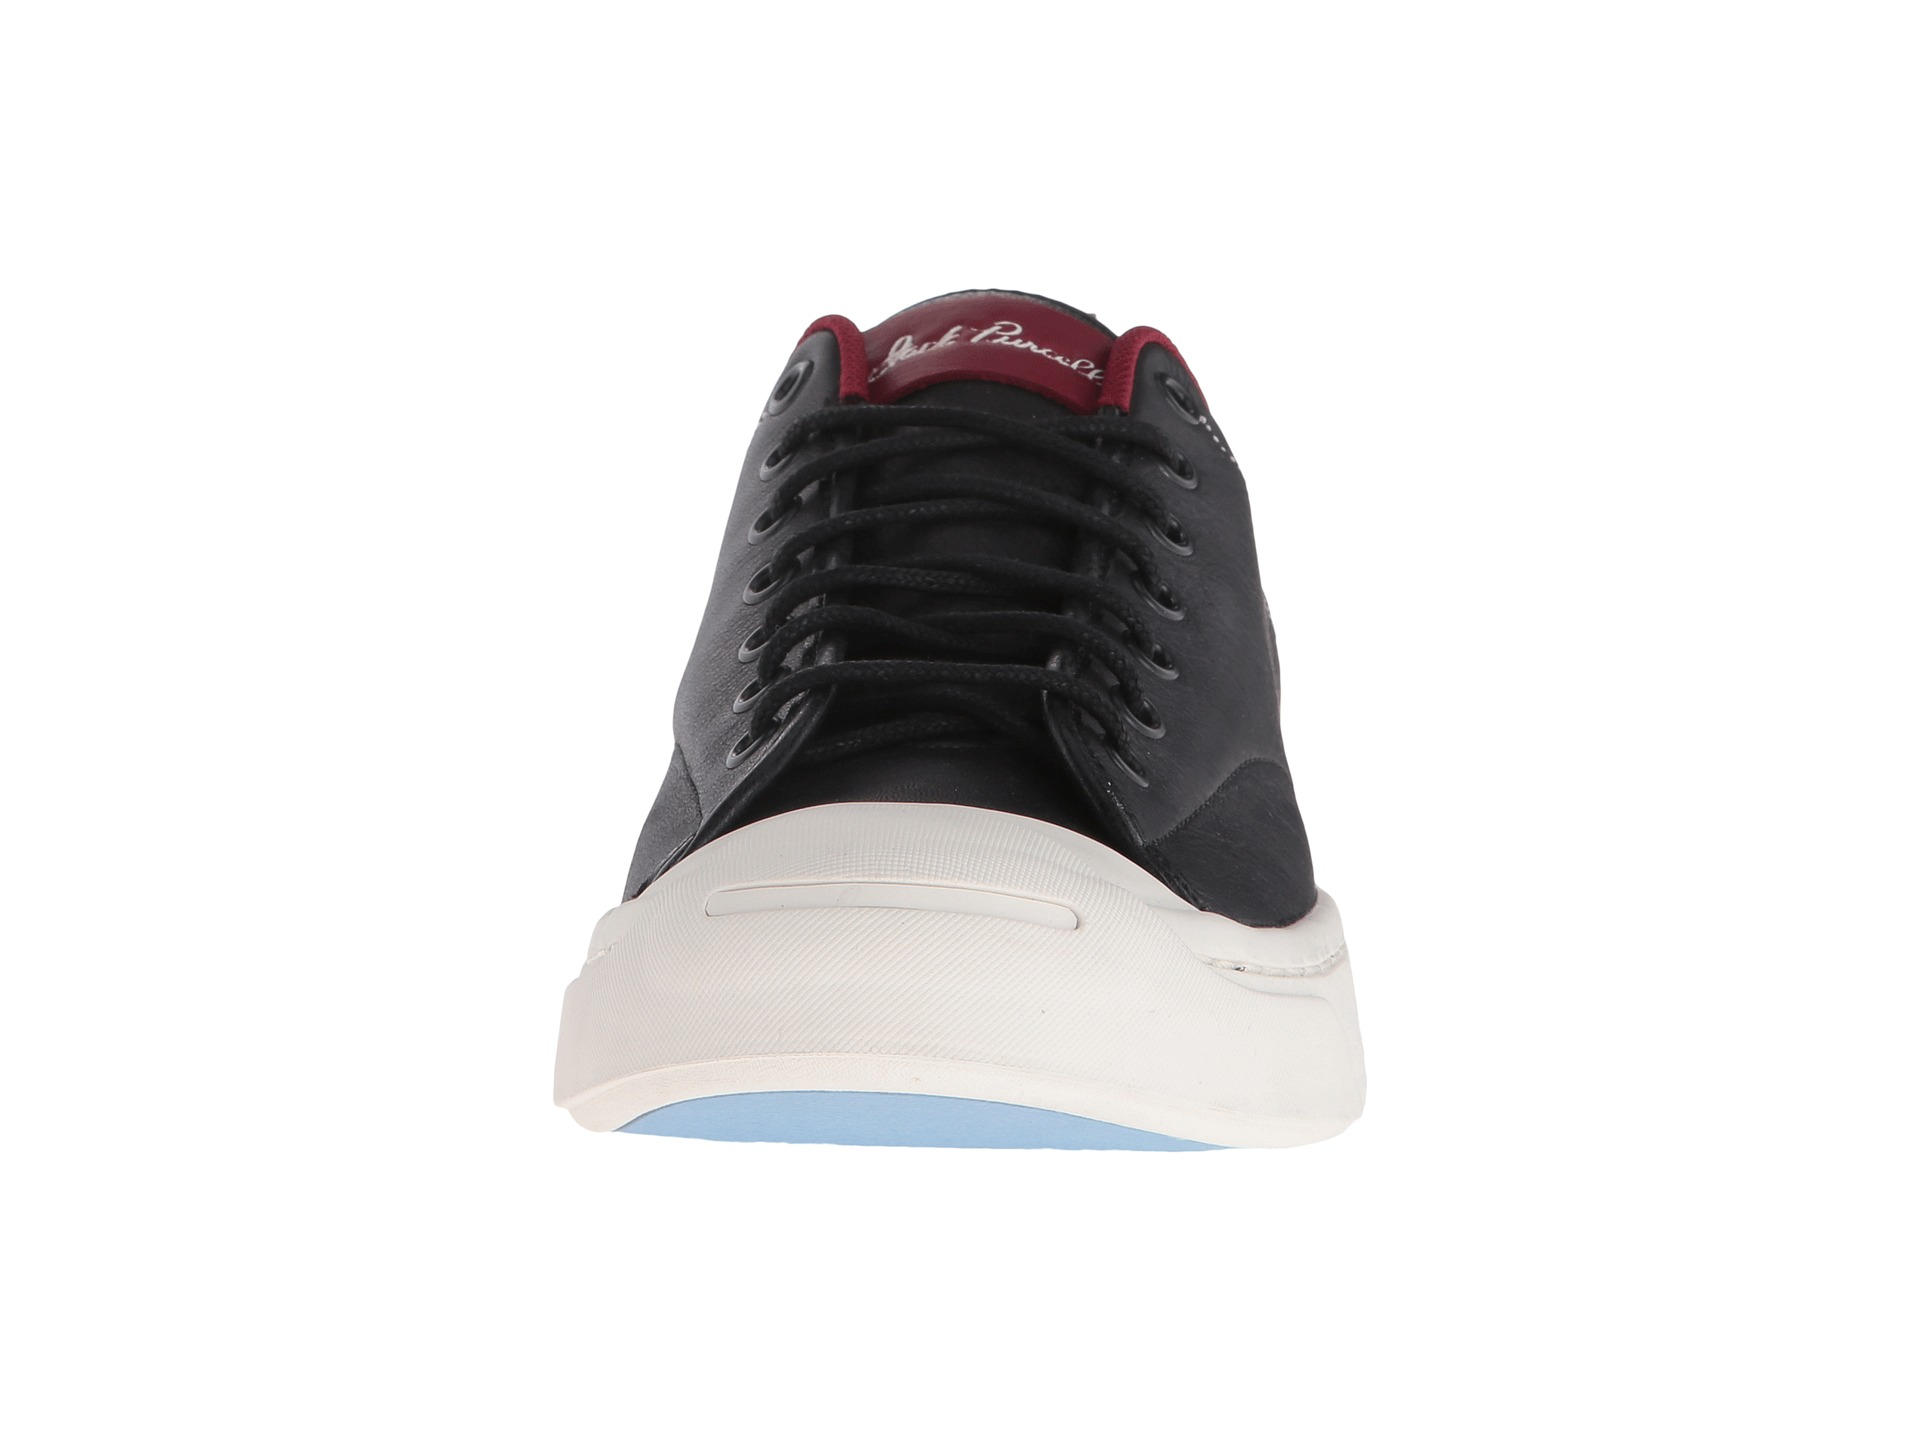 Lyst - Converse Jack Purcell® M-series Tumbled Leather Ox in Red for Men 538f0a9db